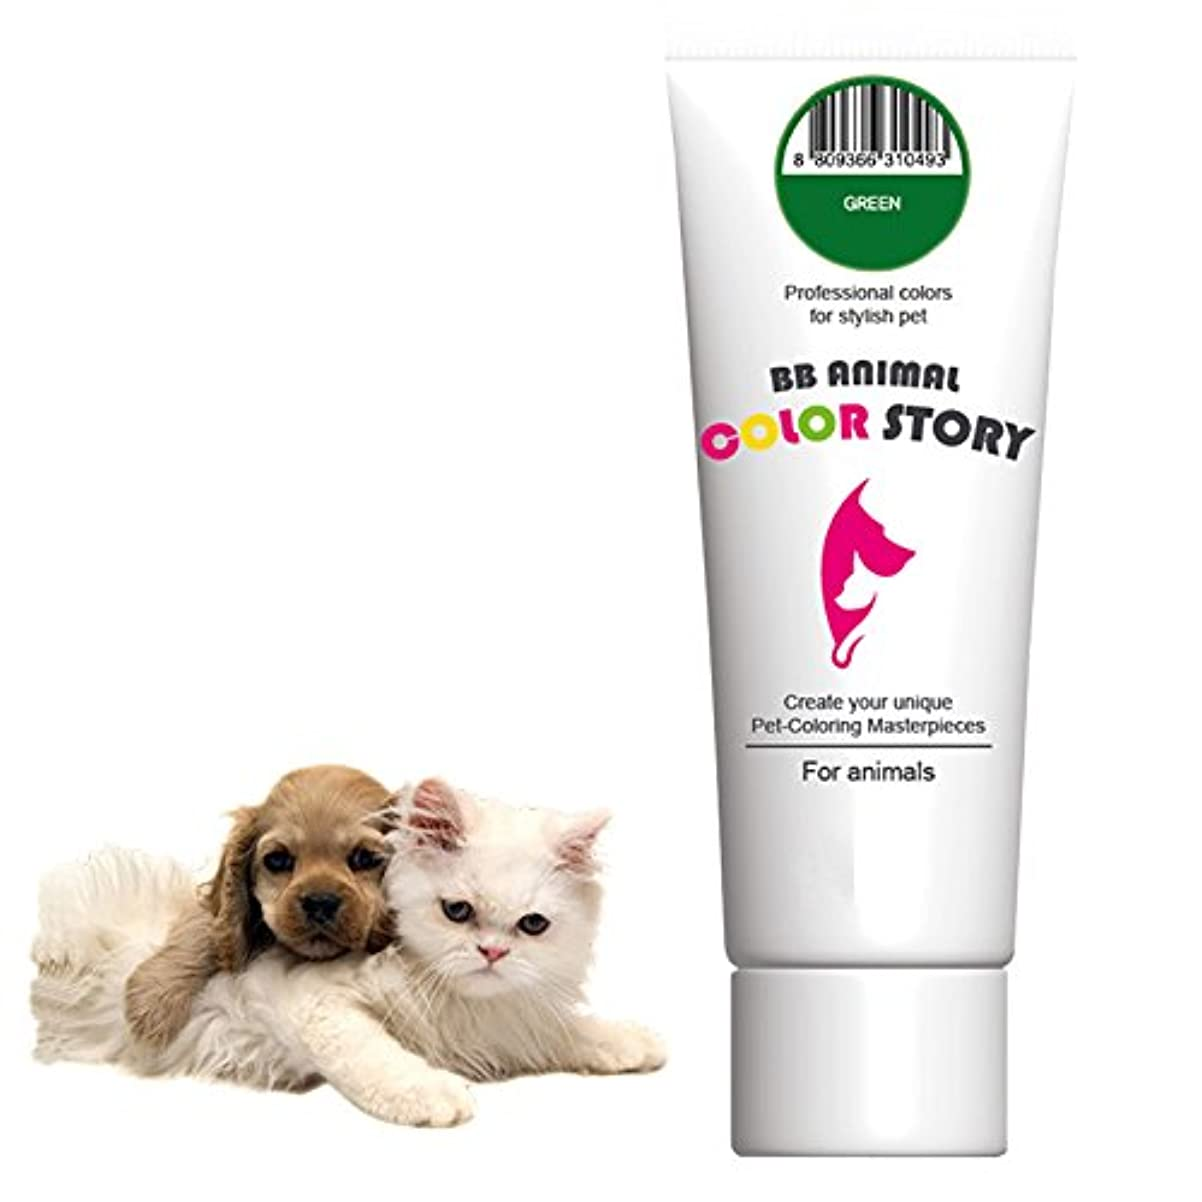 出会いスラム郡毛染め, 犬ヘアダイ, Green, カラーリング Dog Hair Dye Hair Coloring Hair Bleach Professional Colors for Stylish Pet 50ml 並行輸入